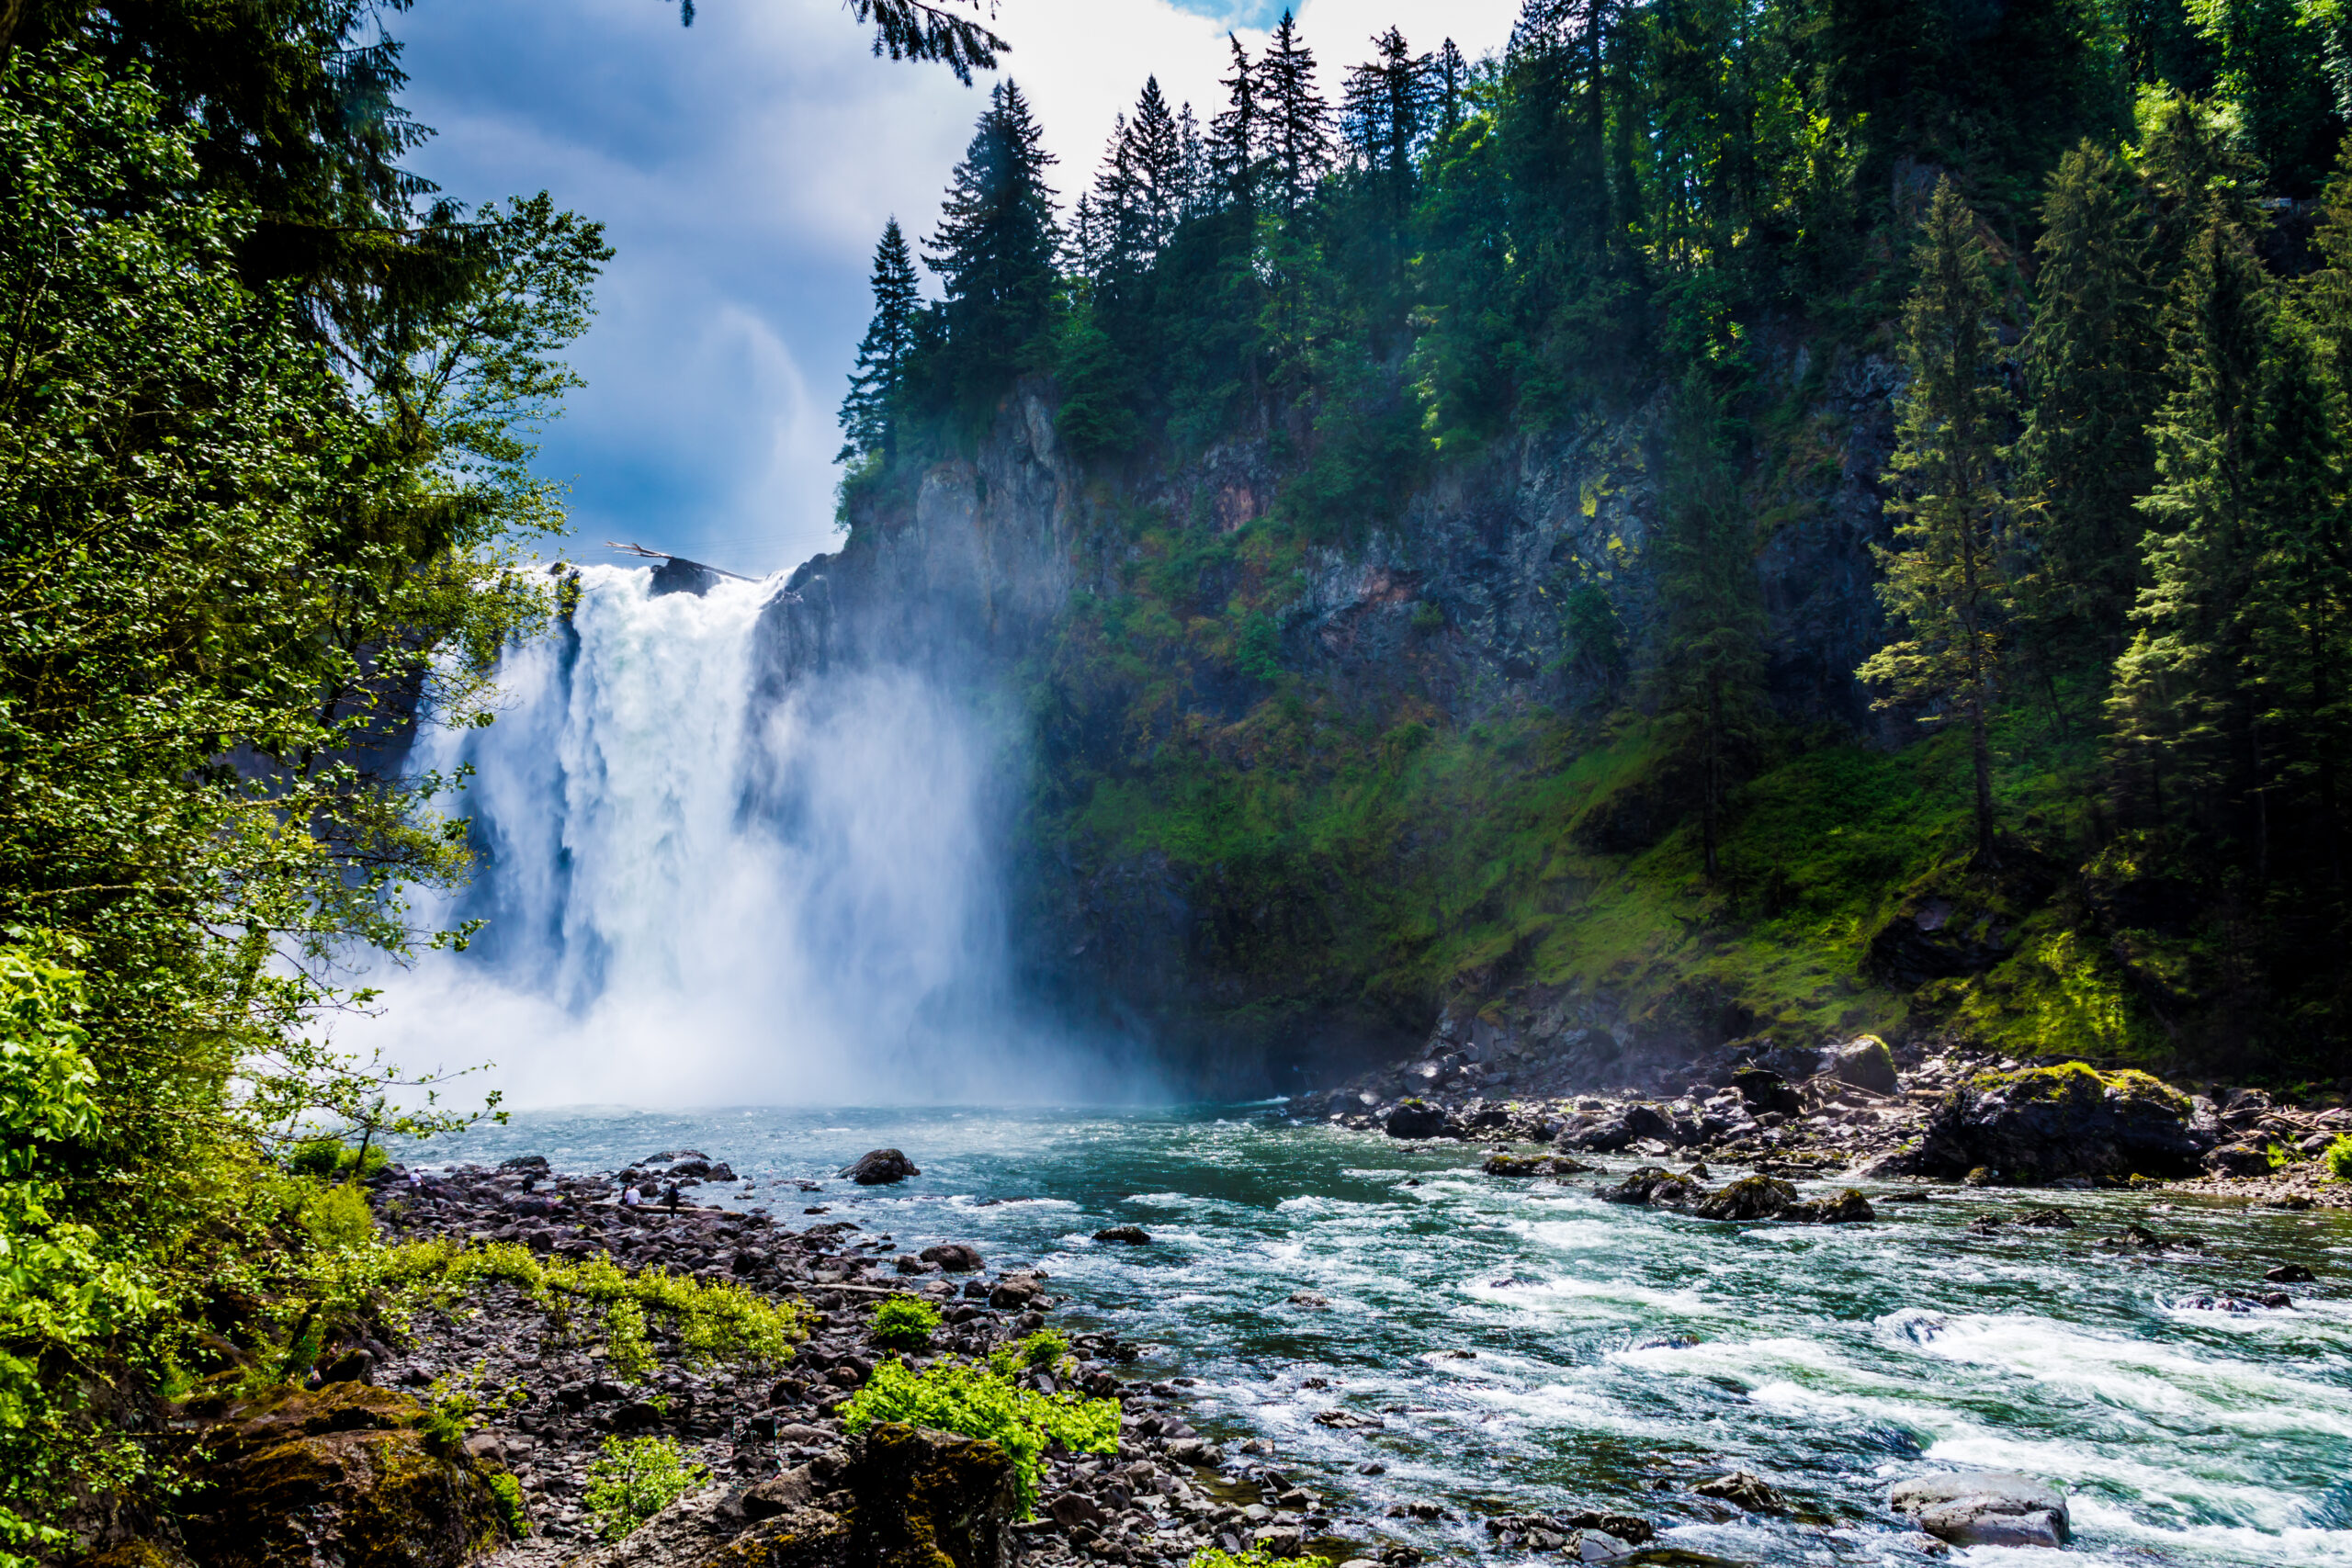 snoqualmie falls near seattle, one of the best seattle day trips